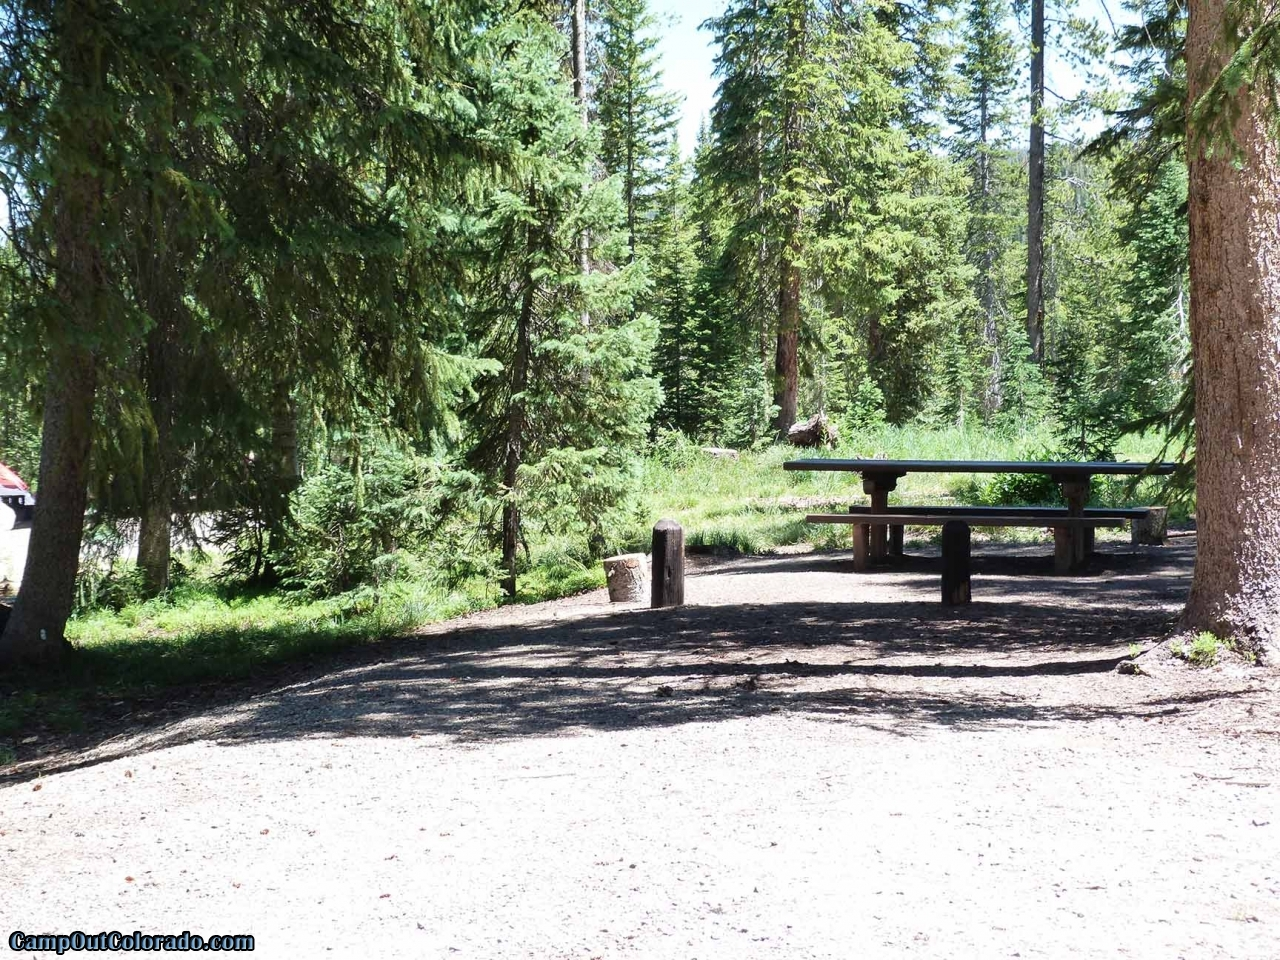 campoutcolorado-meadows-campground-rabbit-ears-level-campsite